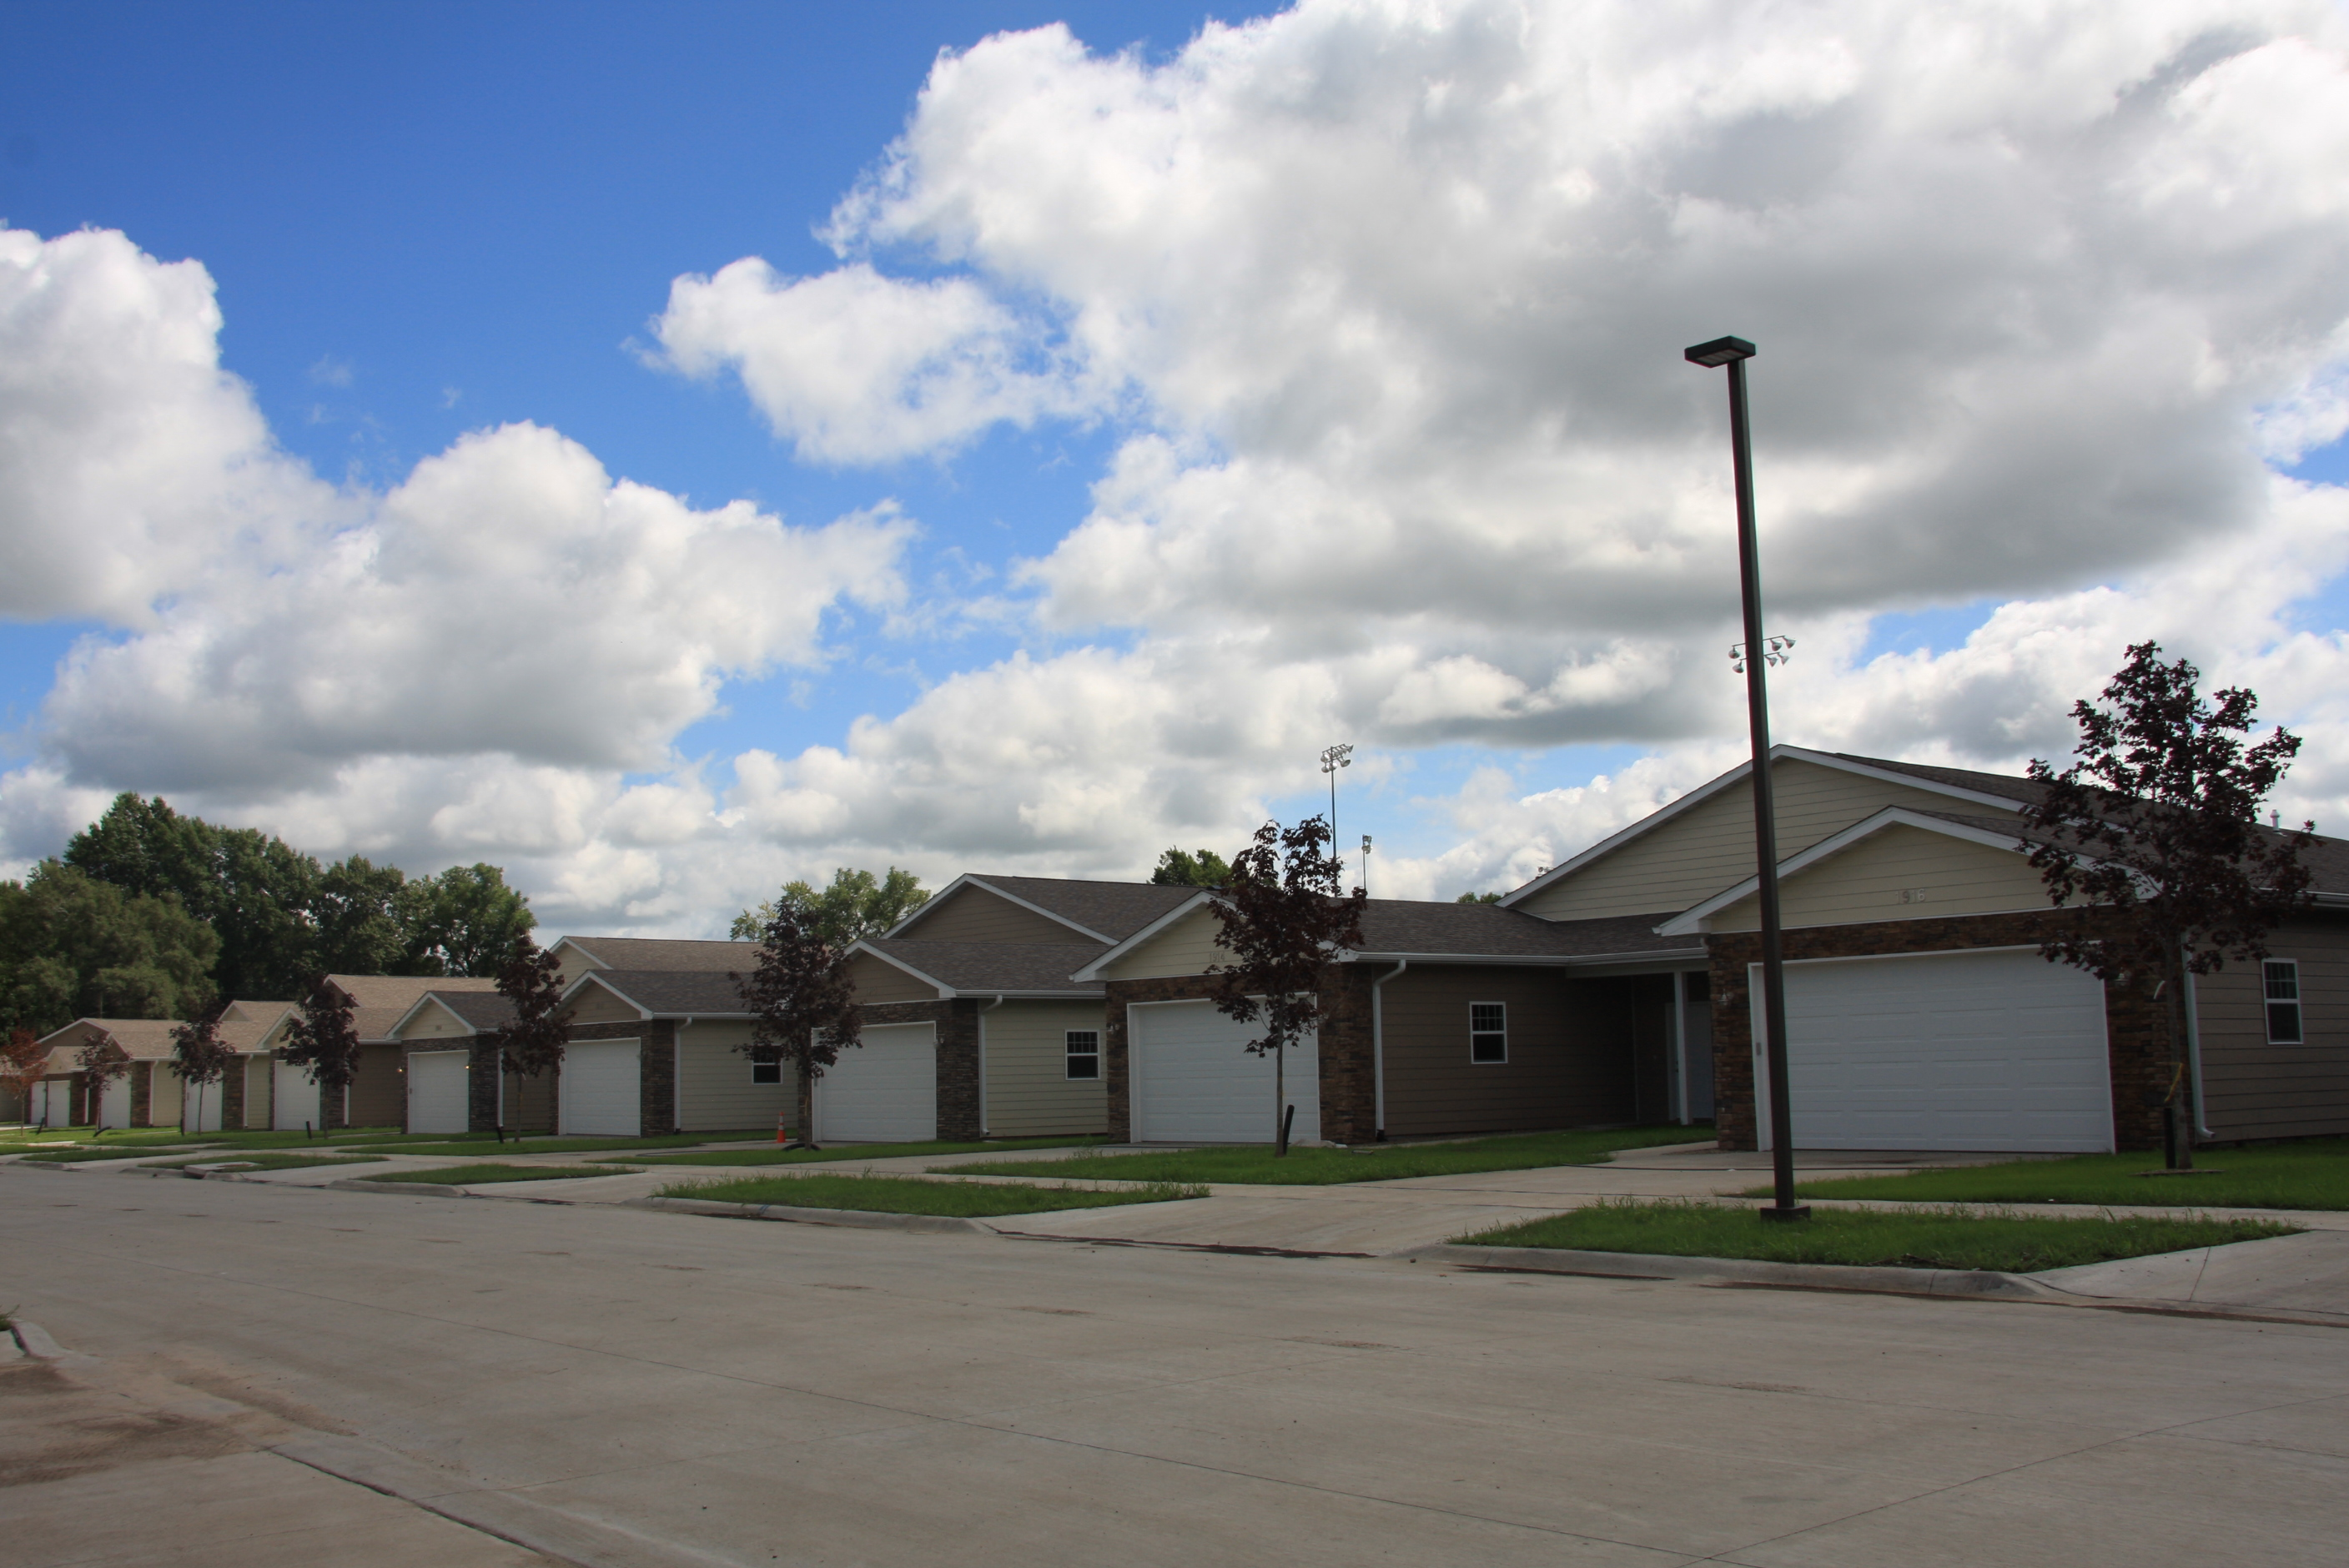 Image of Villas at Fox Pointe in Knoxville, Iowa